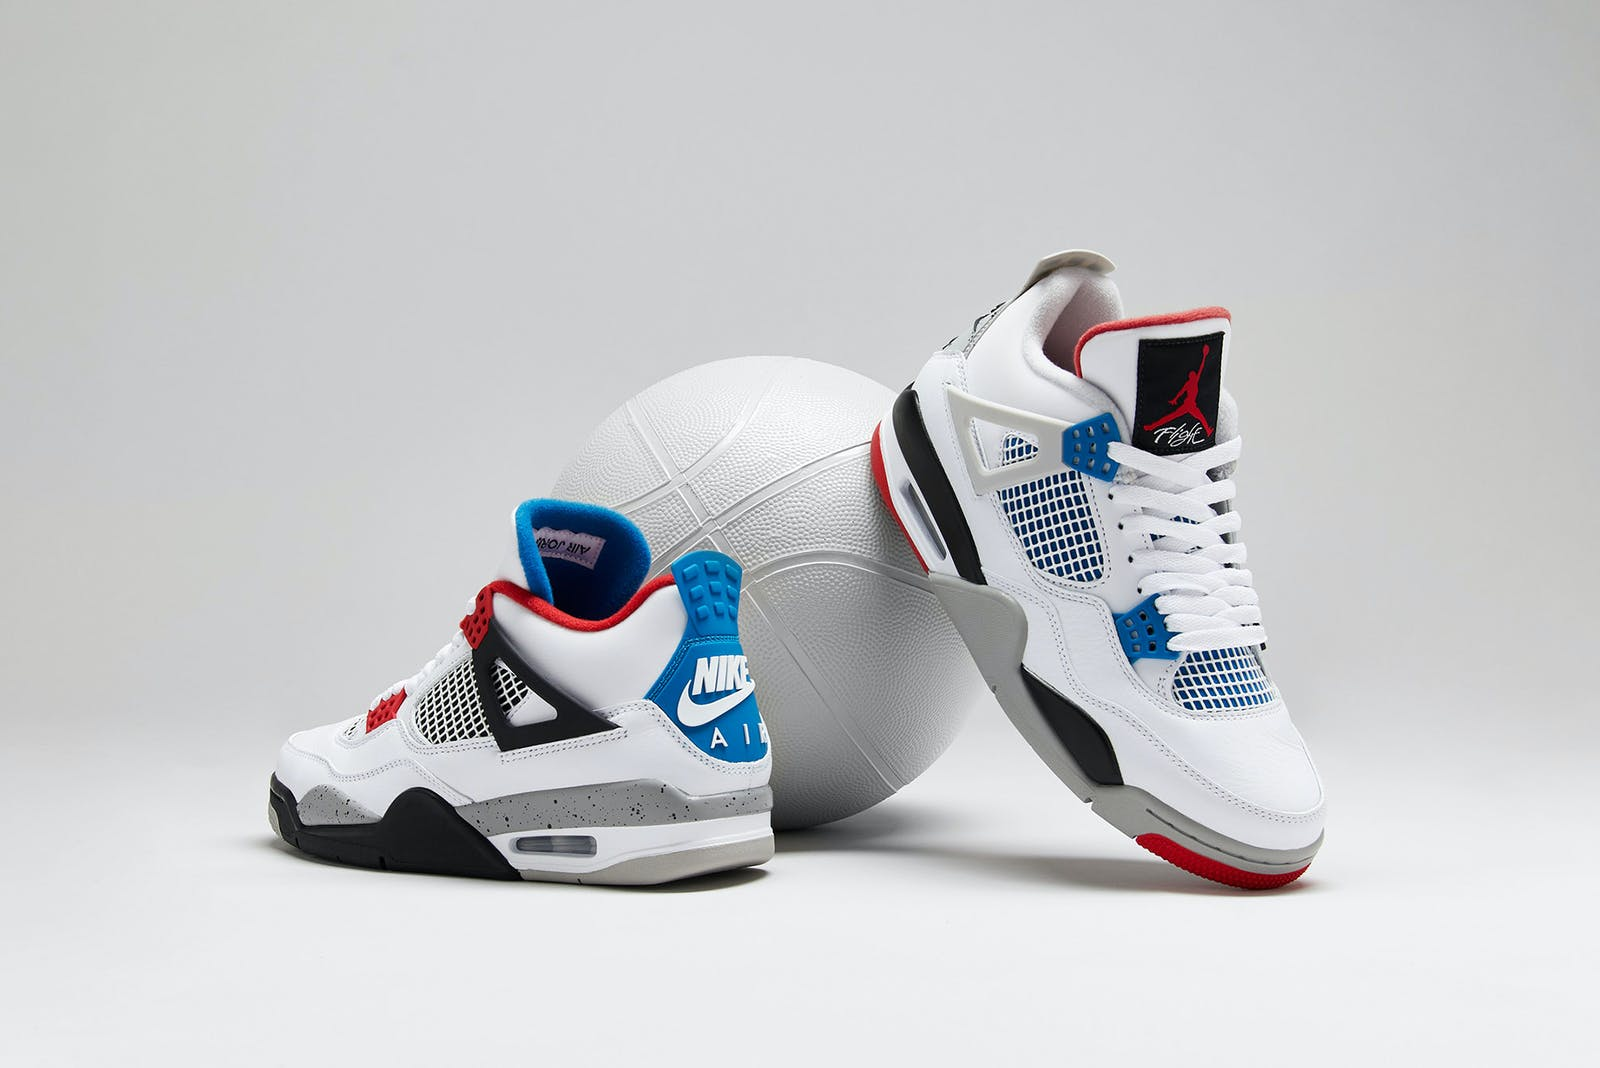 Nike Air Jordan 4 'What The 4?' - CI1184-146